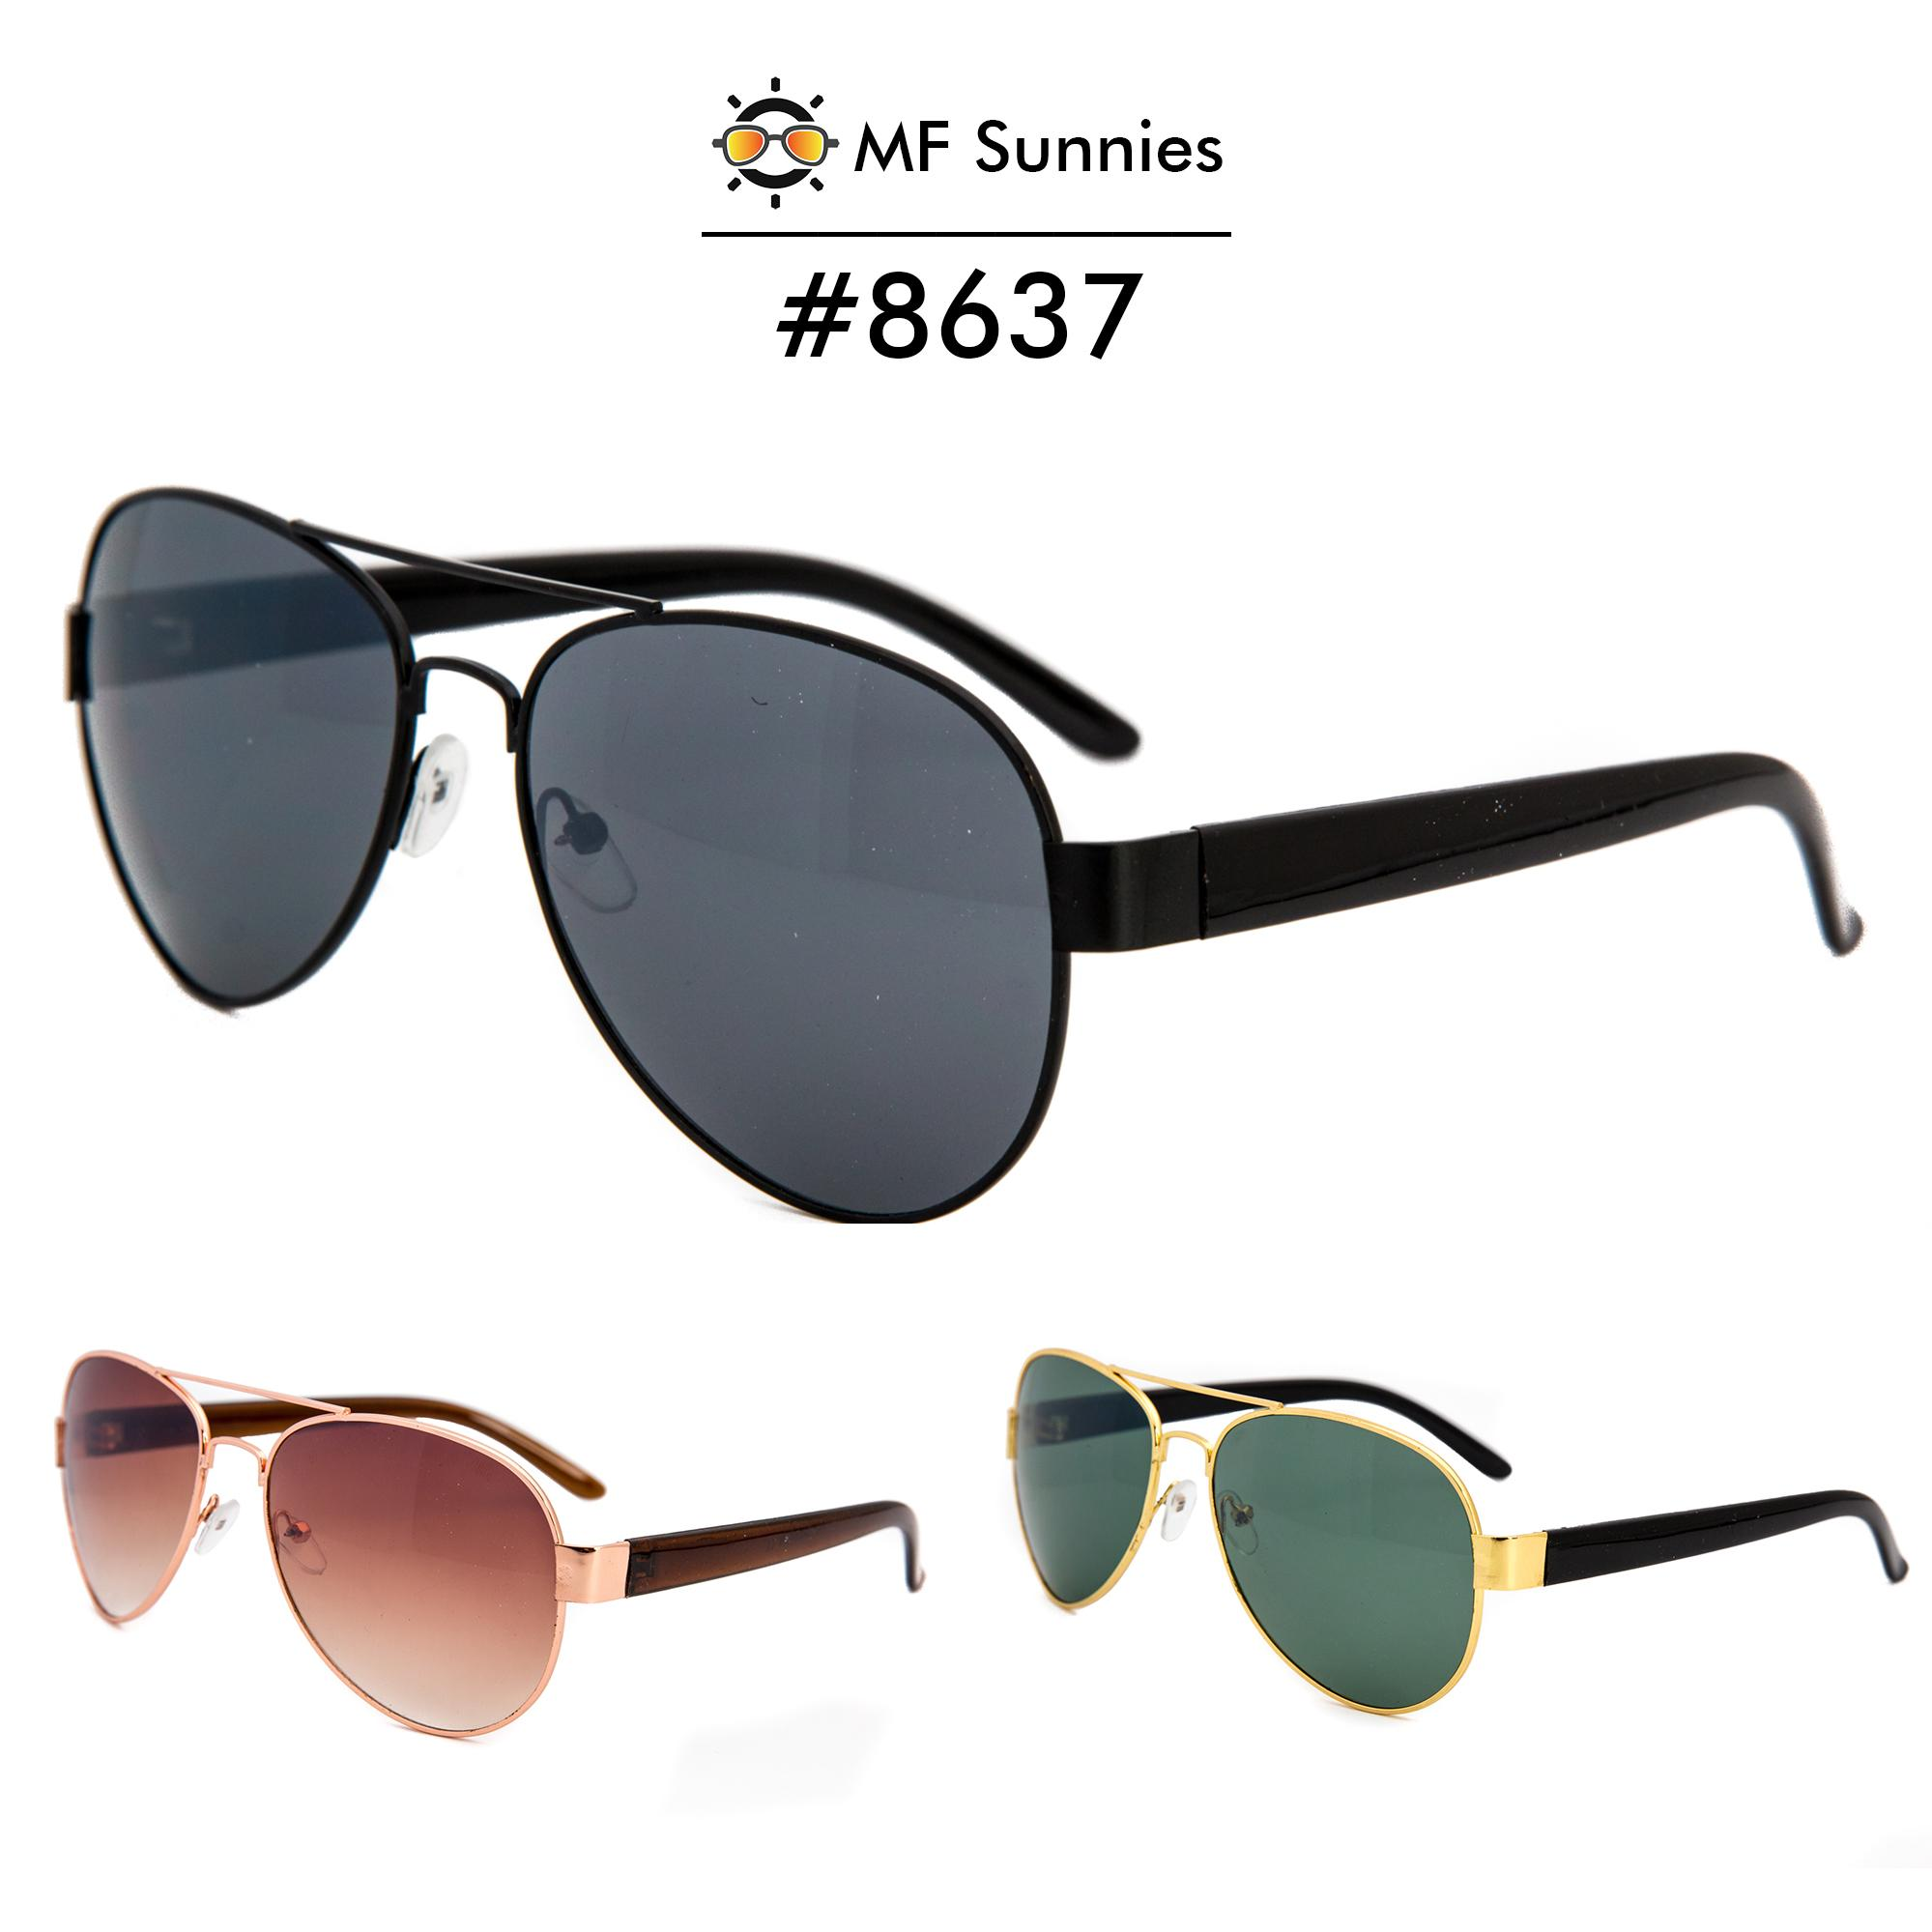 5ba31d57d2 MFSunnies Classic Aviator Sunglass Metal Frame Fashion Eyewear  8637